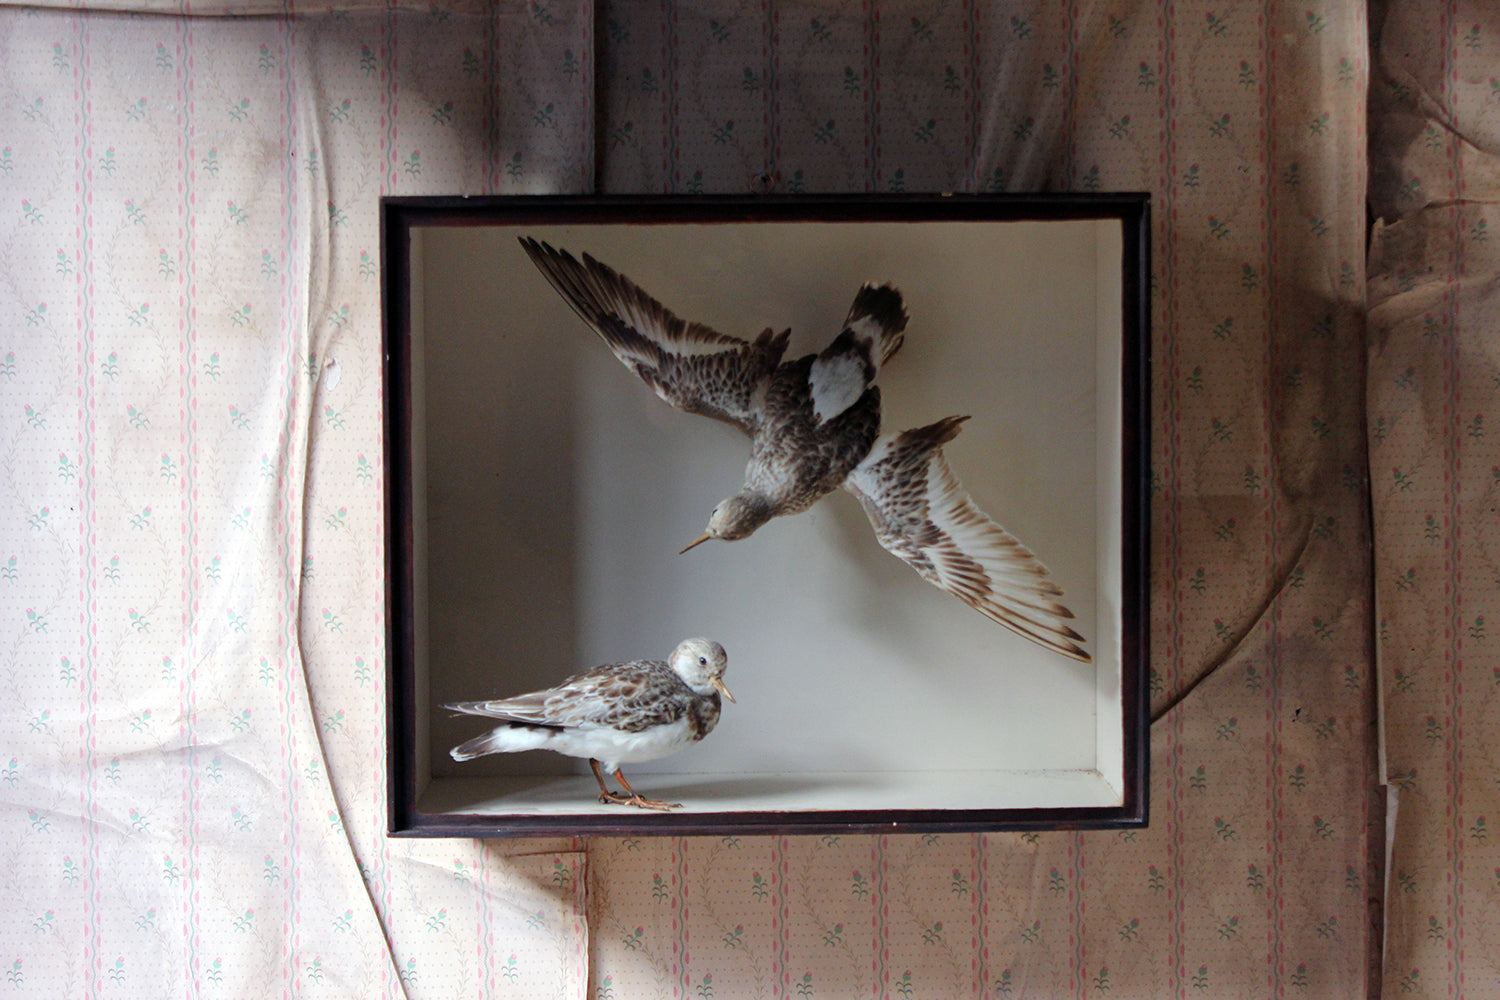 A Museum Cased Taxidermy Pair of Turnstones by Joseph Cullingford of Durham 1898/99